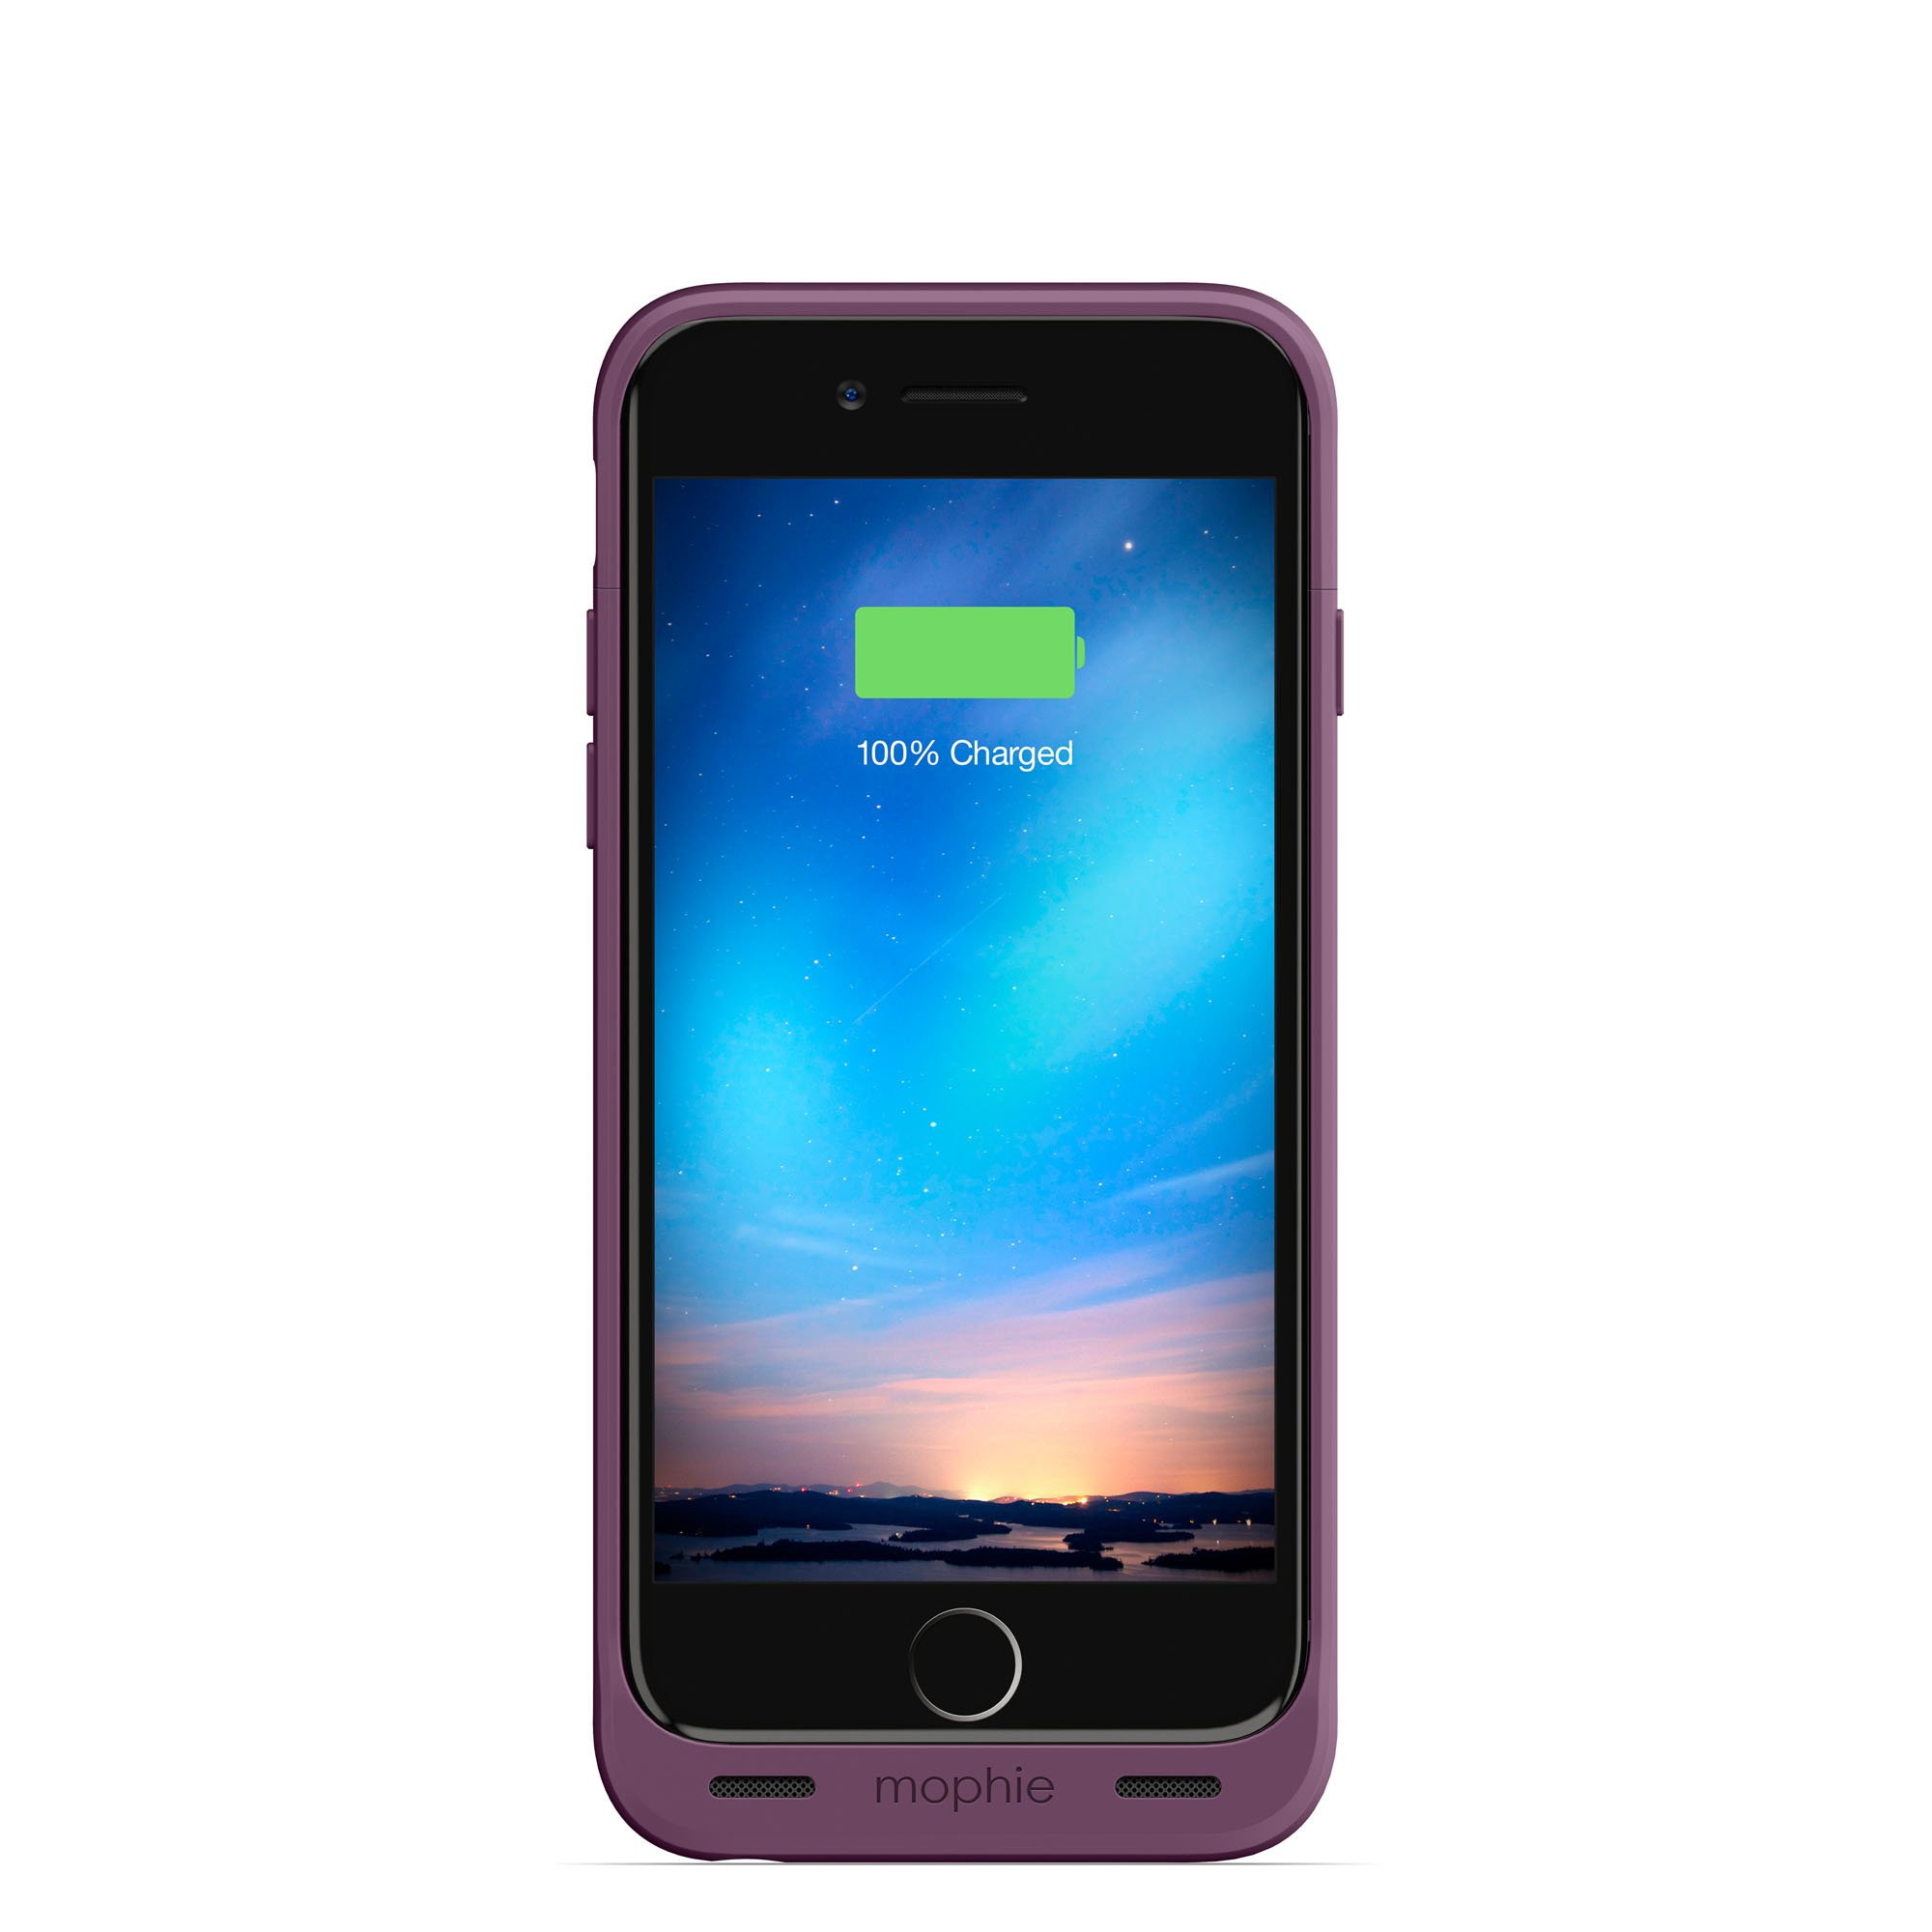 mophie Juice Pack Reserve - Lightweight and Compact Mobile Protective Battery Case for iPhone 6/6s - Purple